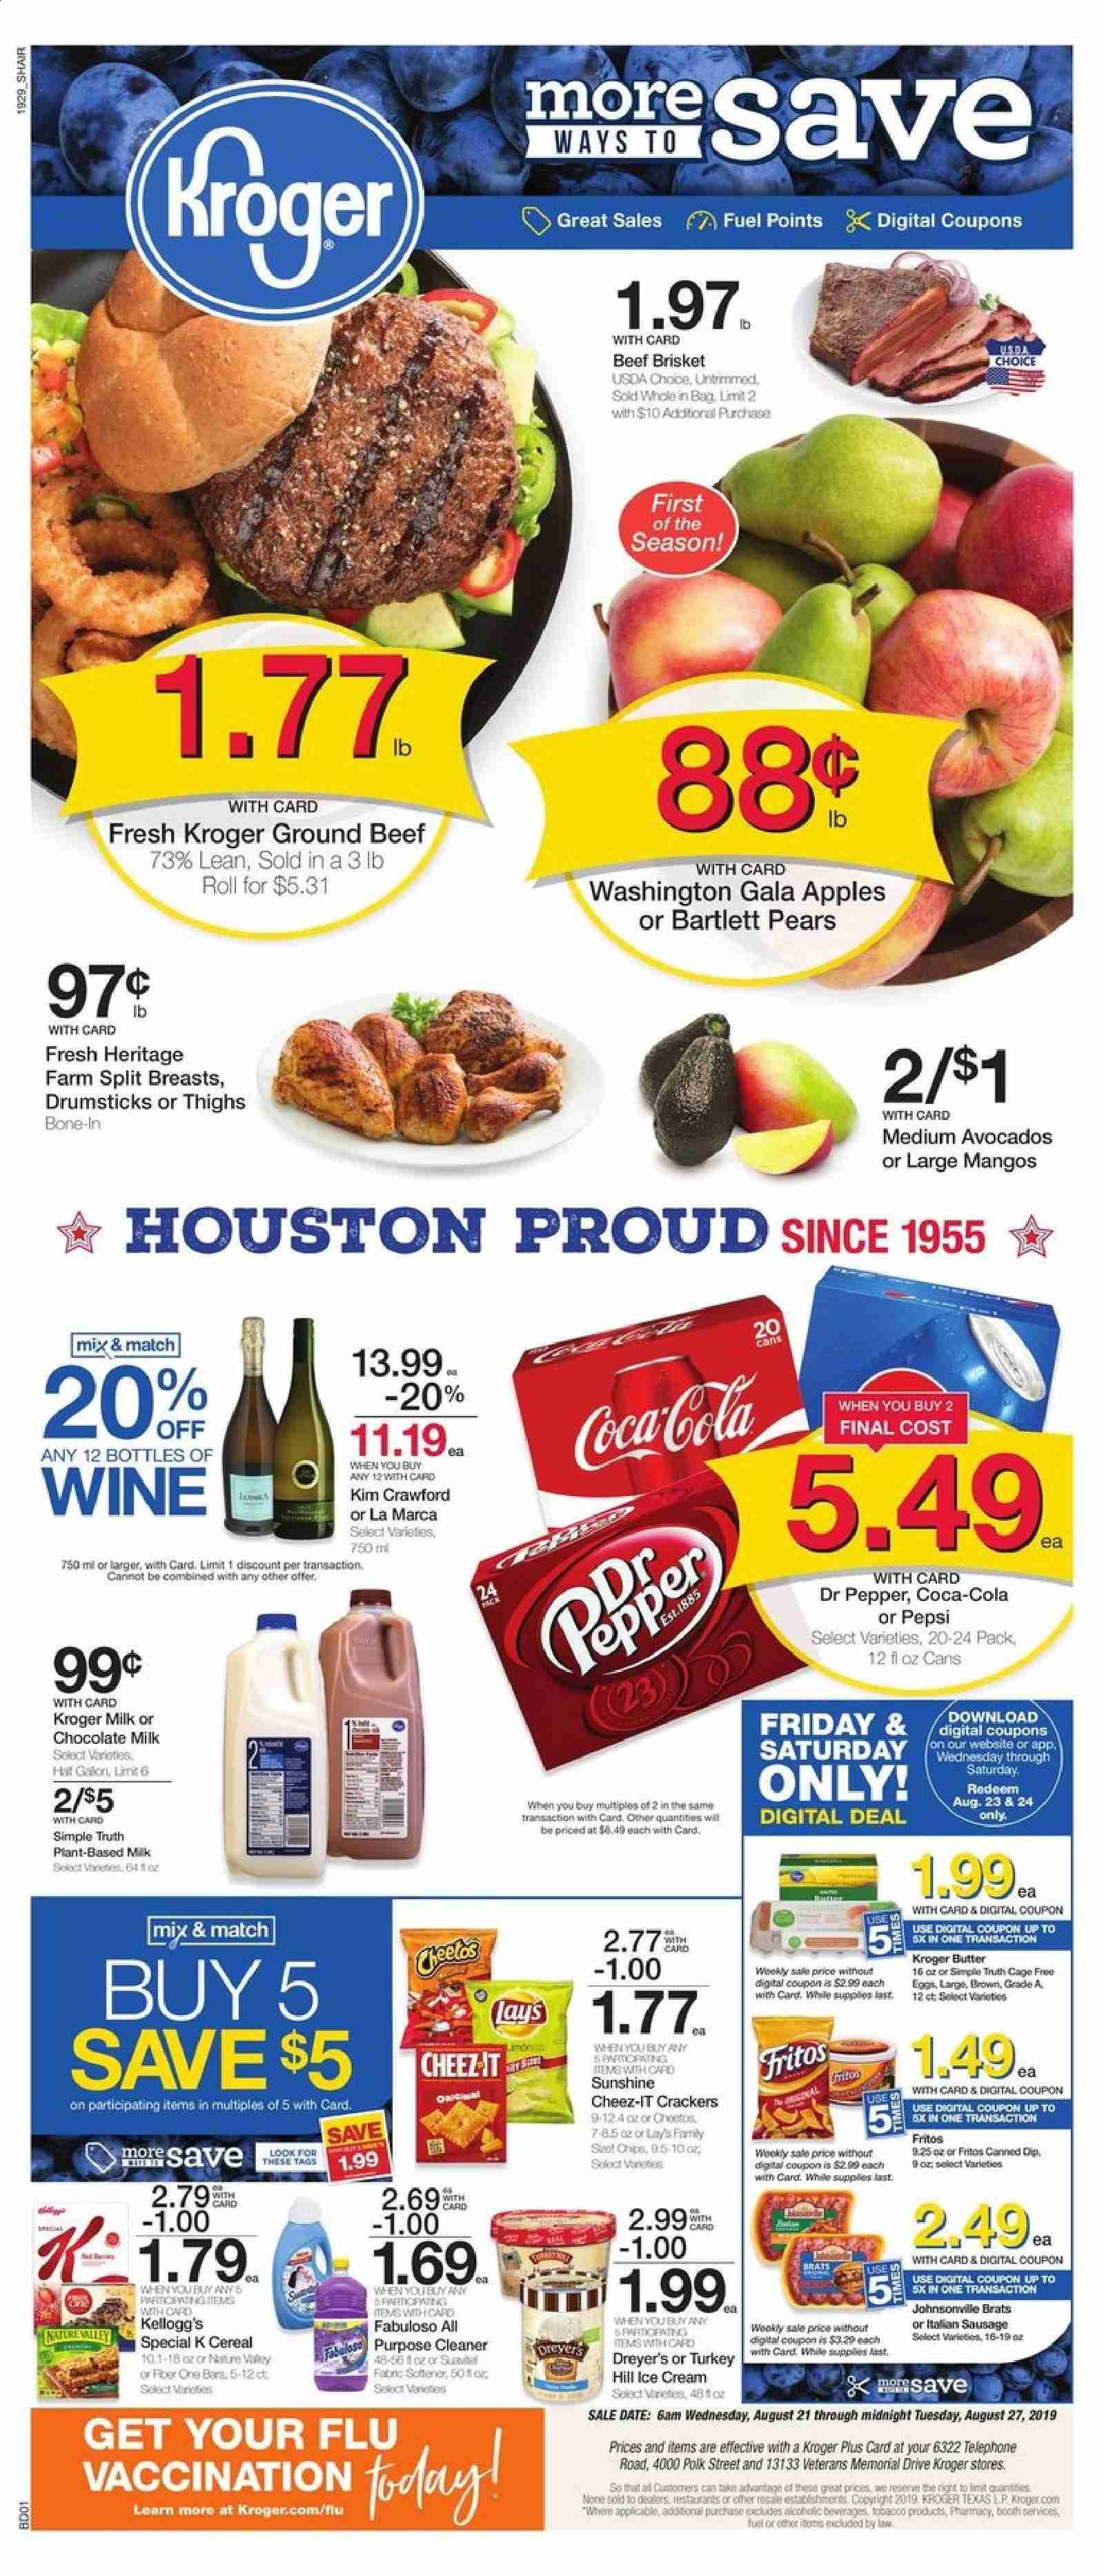 Kroger Flyer - 08.21.2019 - 08.27.2019 - Sales products - apples, avocado, bartlett pears, beef meat, butter, cereals, coca-cola, crackers, eggs, fritos, fuel, gala apples, ground beef, mango, milk, sausage, turkey, ice cream, polk, pears, pepsi, chocolate milk, chips, chocolate, pepper, cereal, lay's, wine, cleaner, dr. pepper, cream. Page 1.